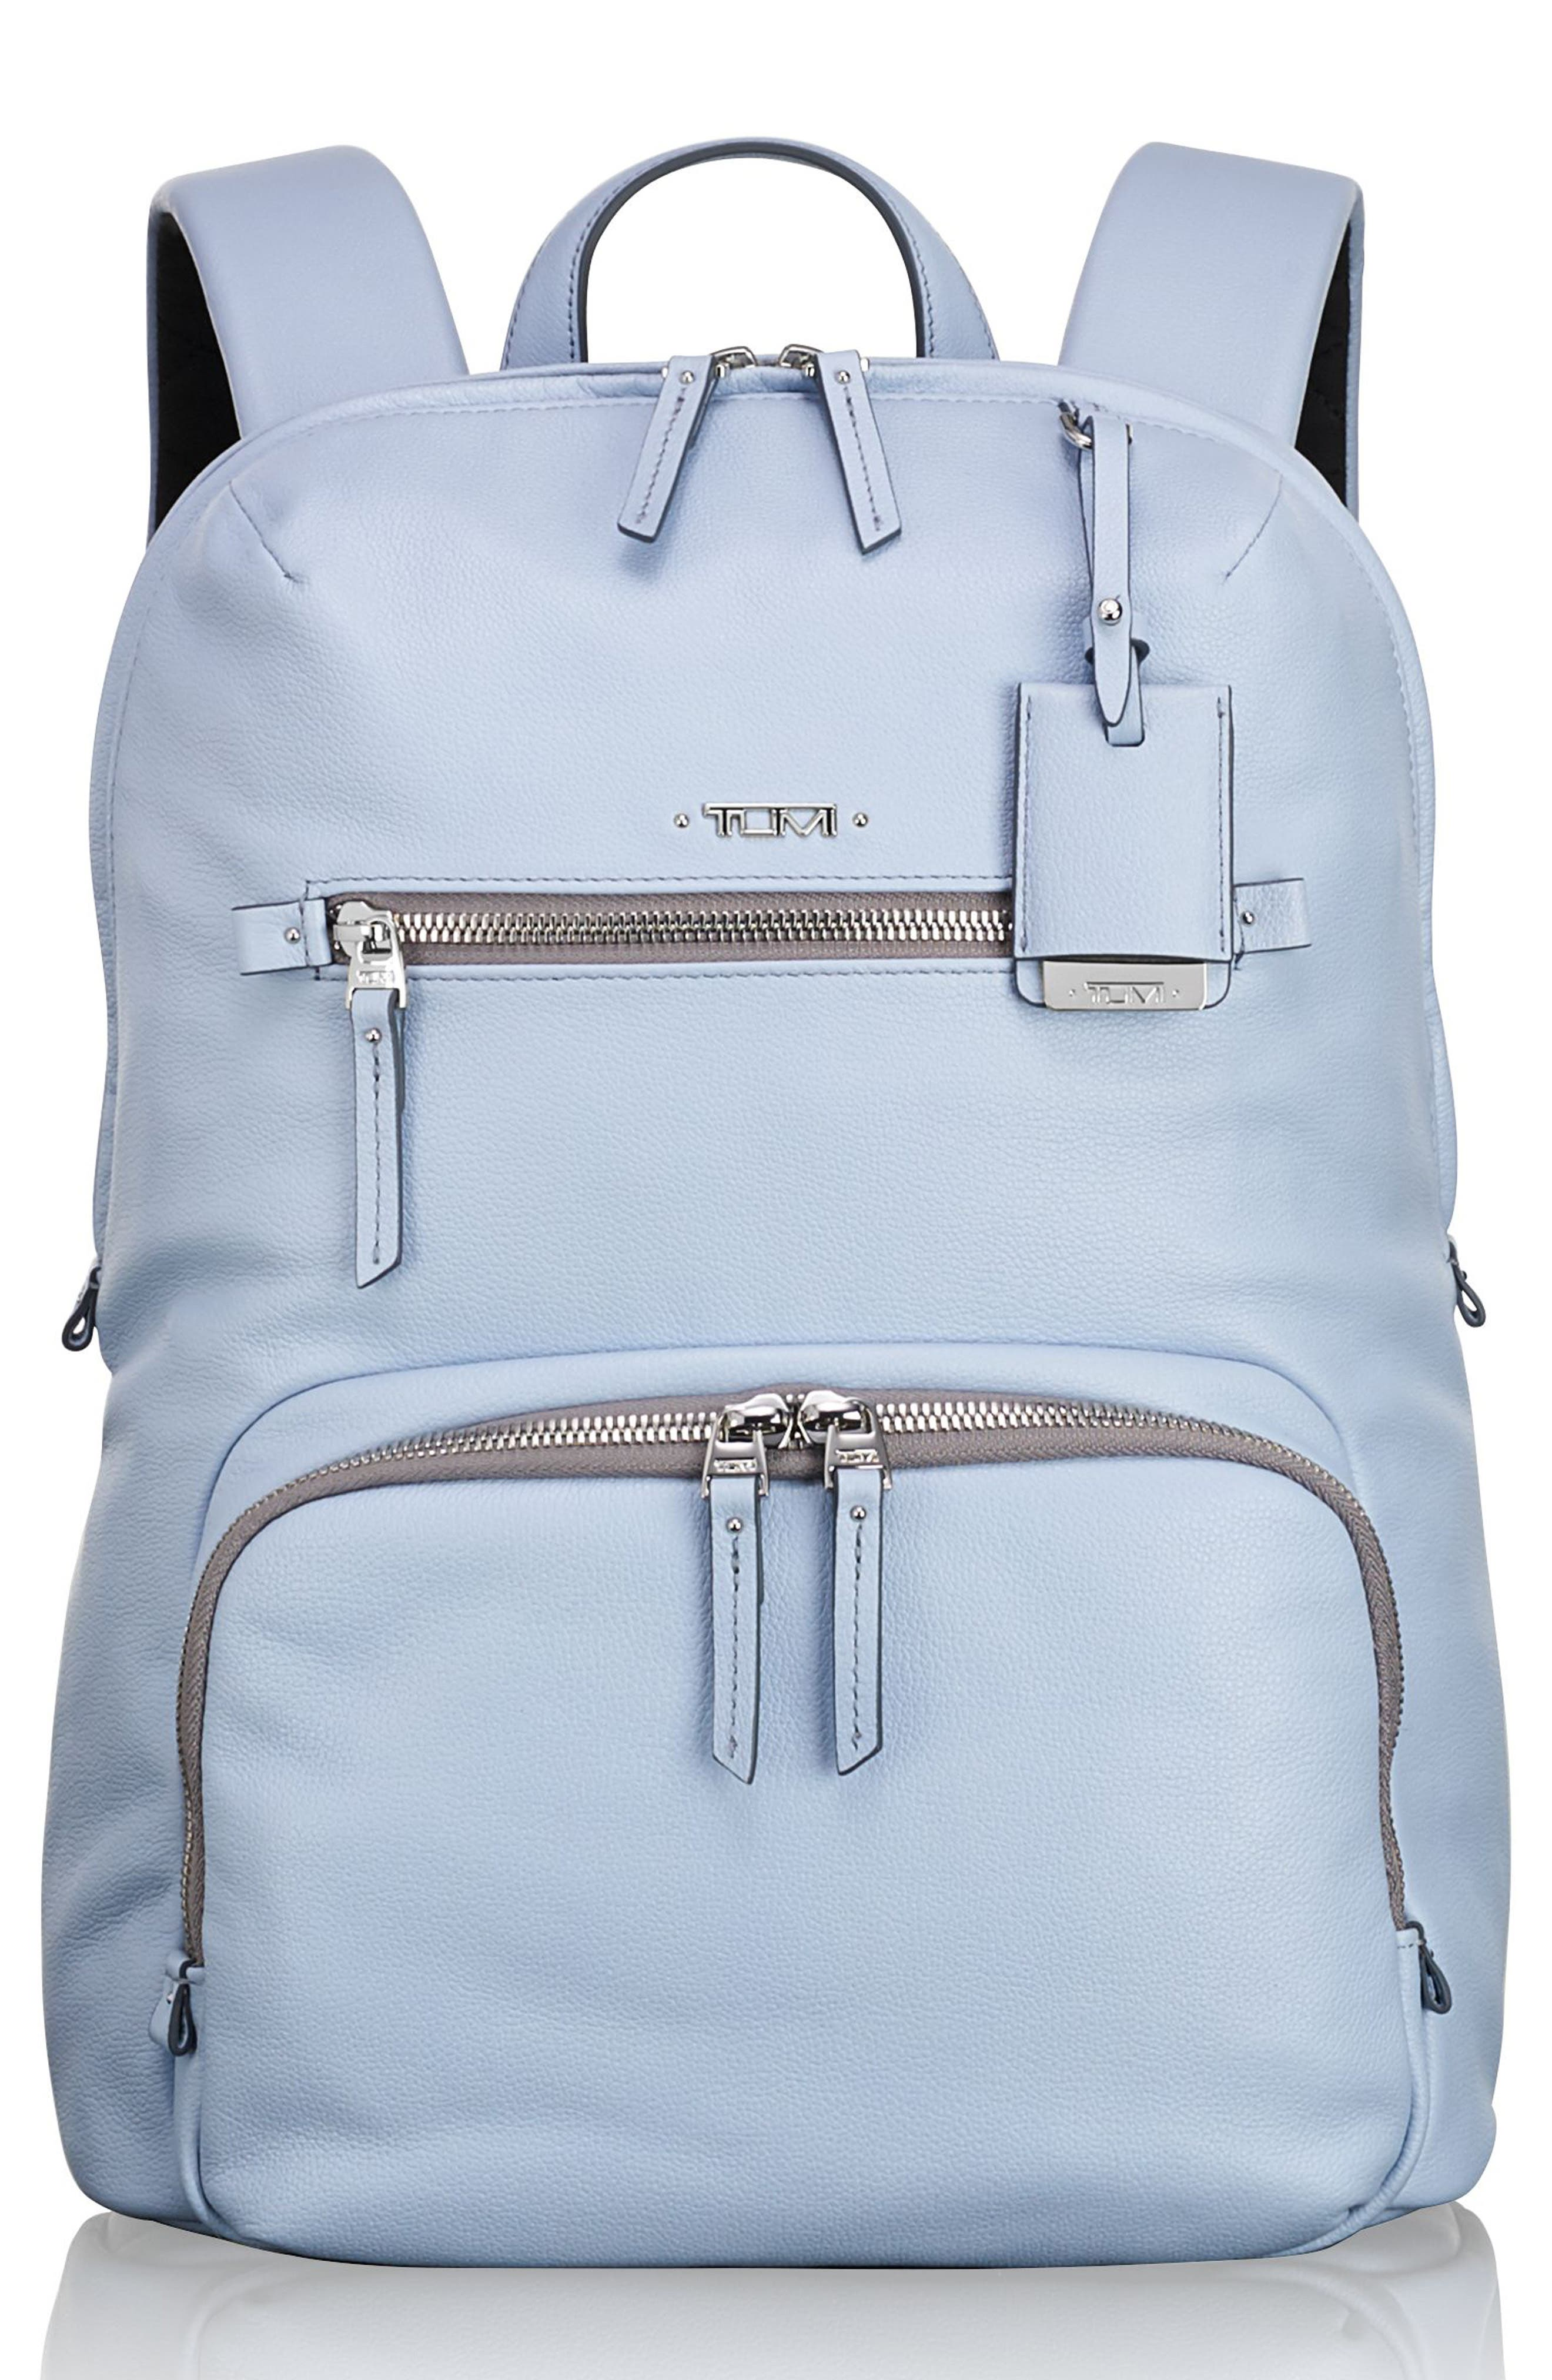 Alternate Image 1 Selected - Tumi Voyageur Halle Leather Backpack (Limited Edition)